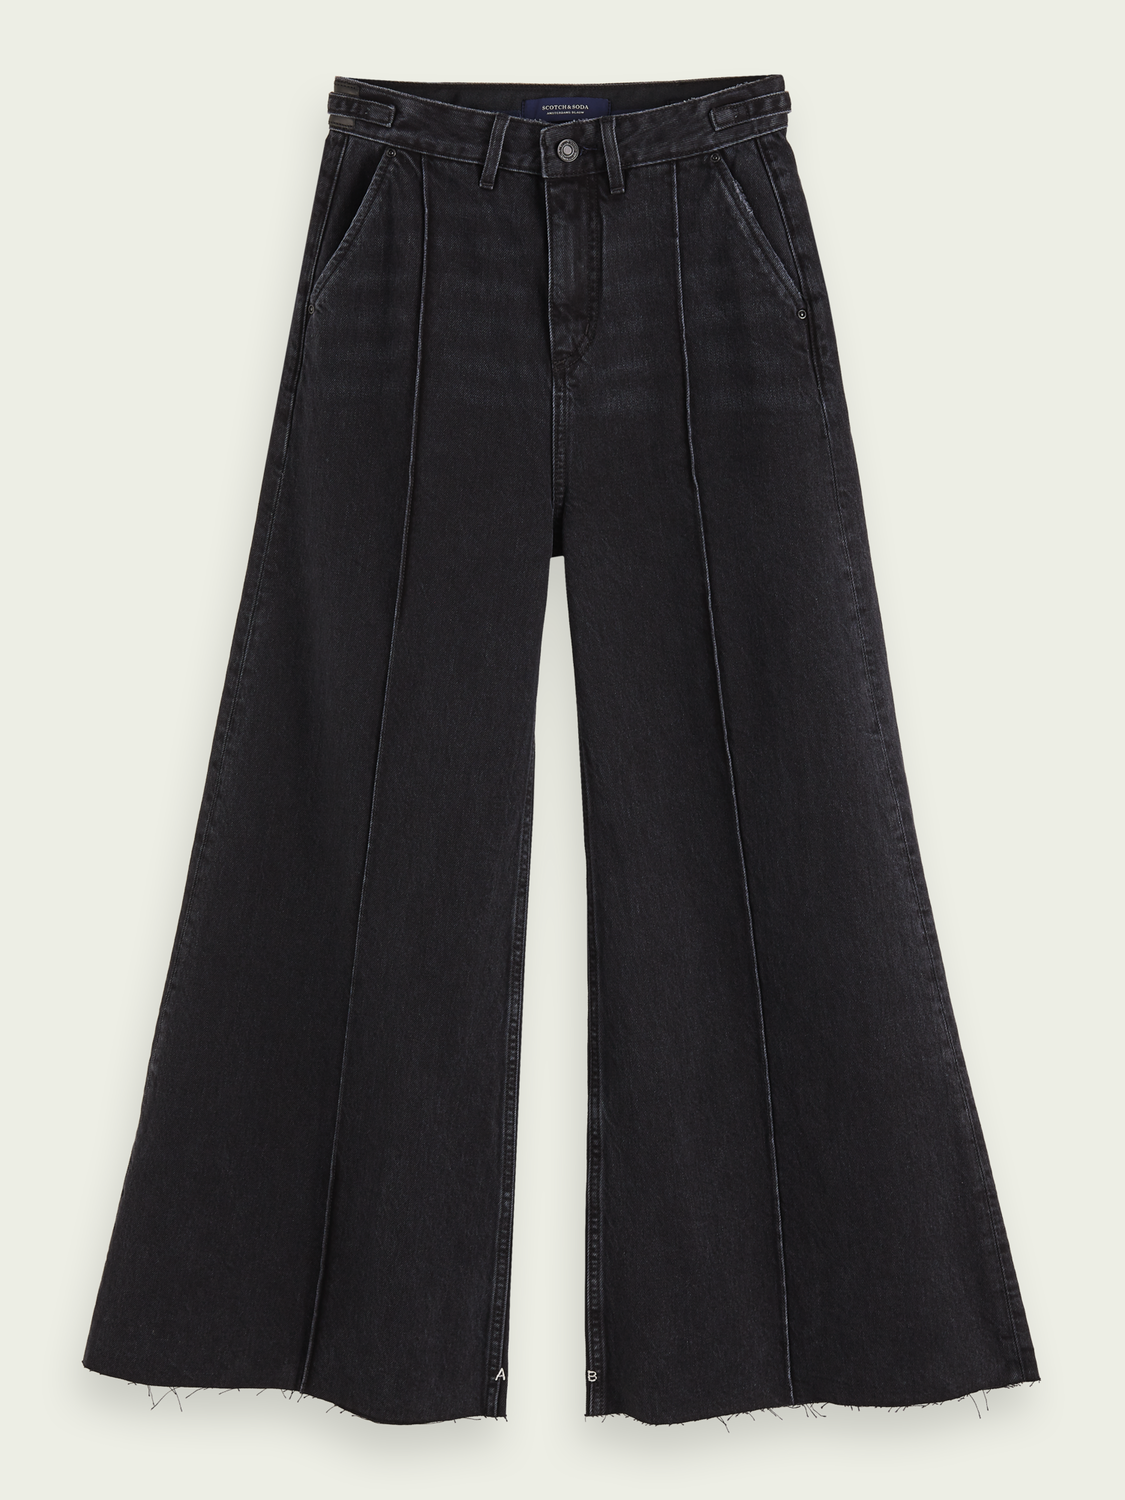 Women High-rise extra-wide leg jeans – Black Butter